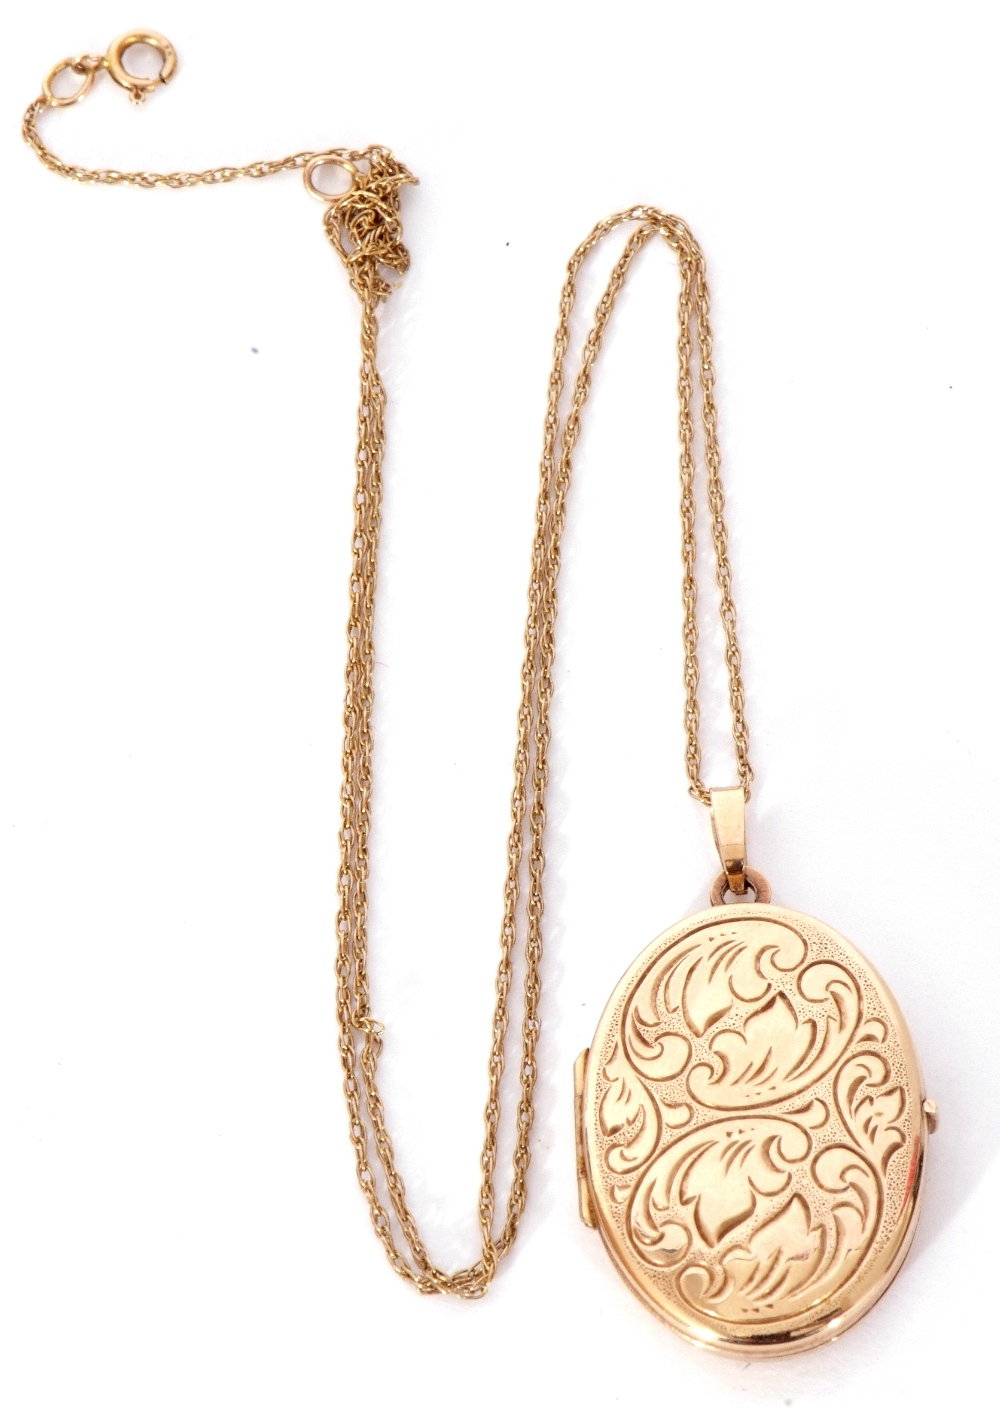 Modern oval yellow metal hinged locket, the front with engraved detail, burnished verso, suspended